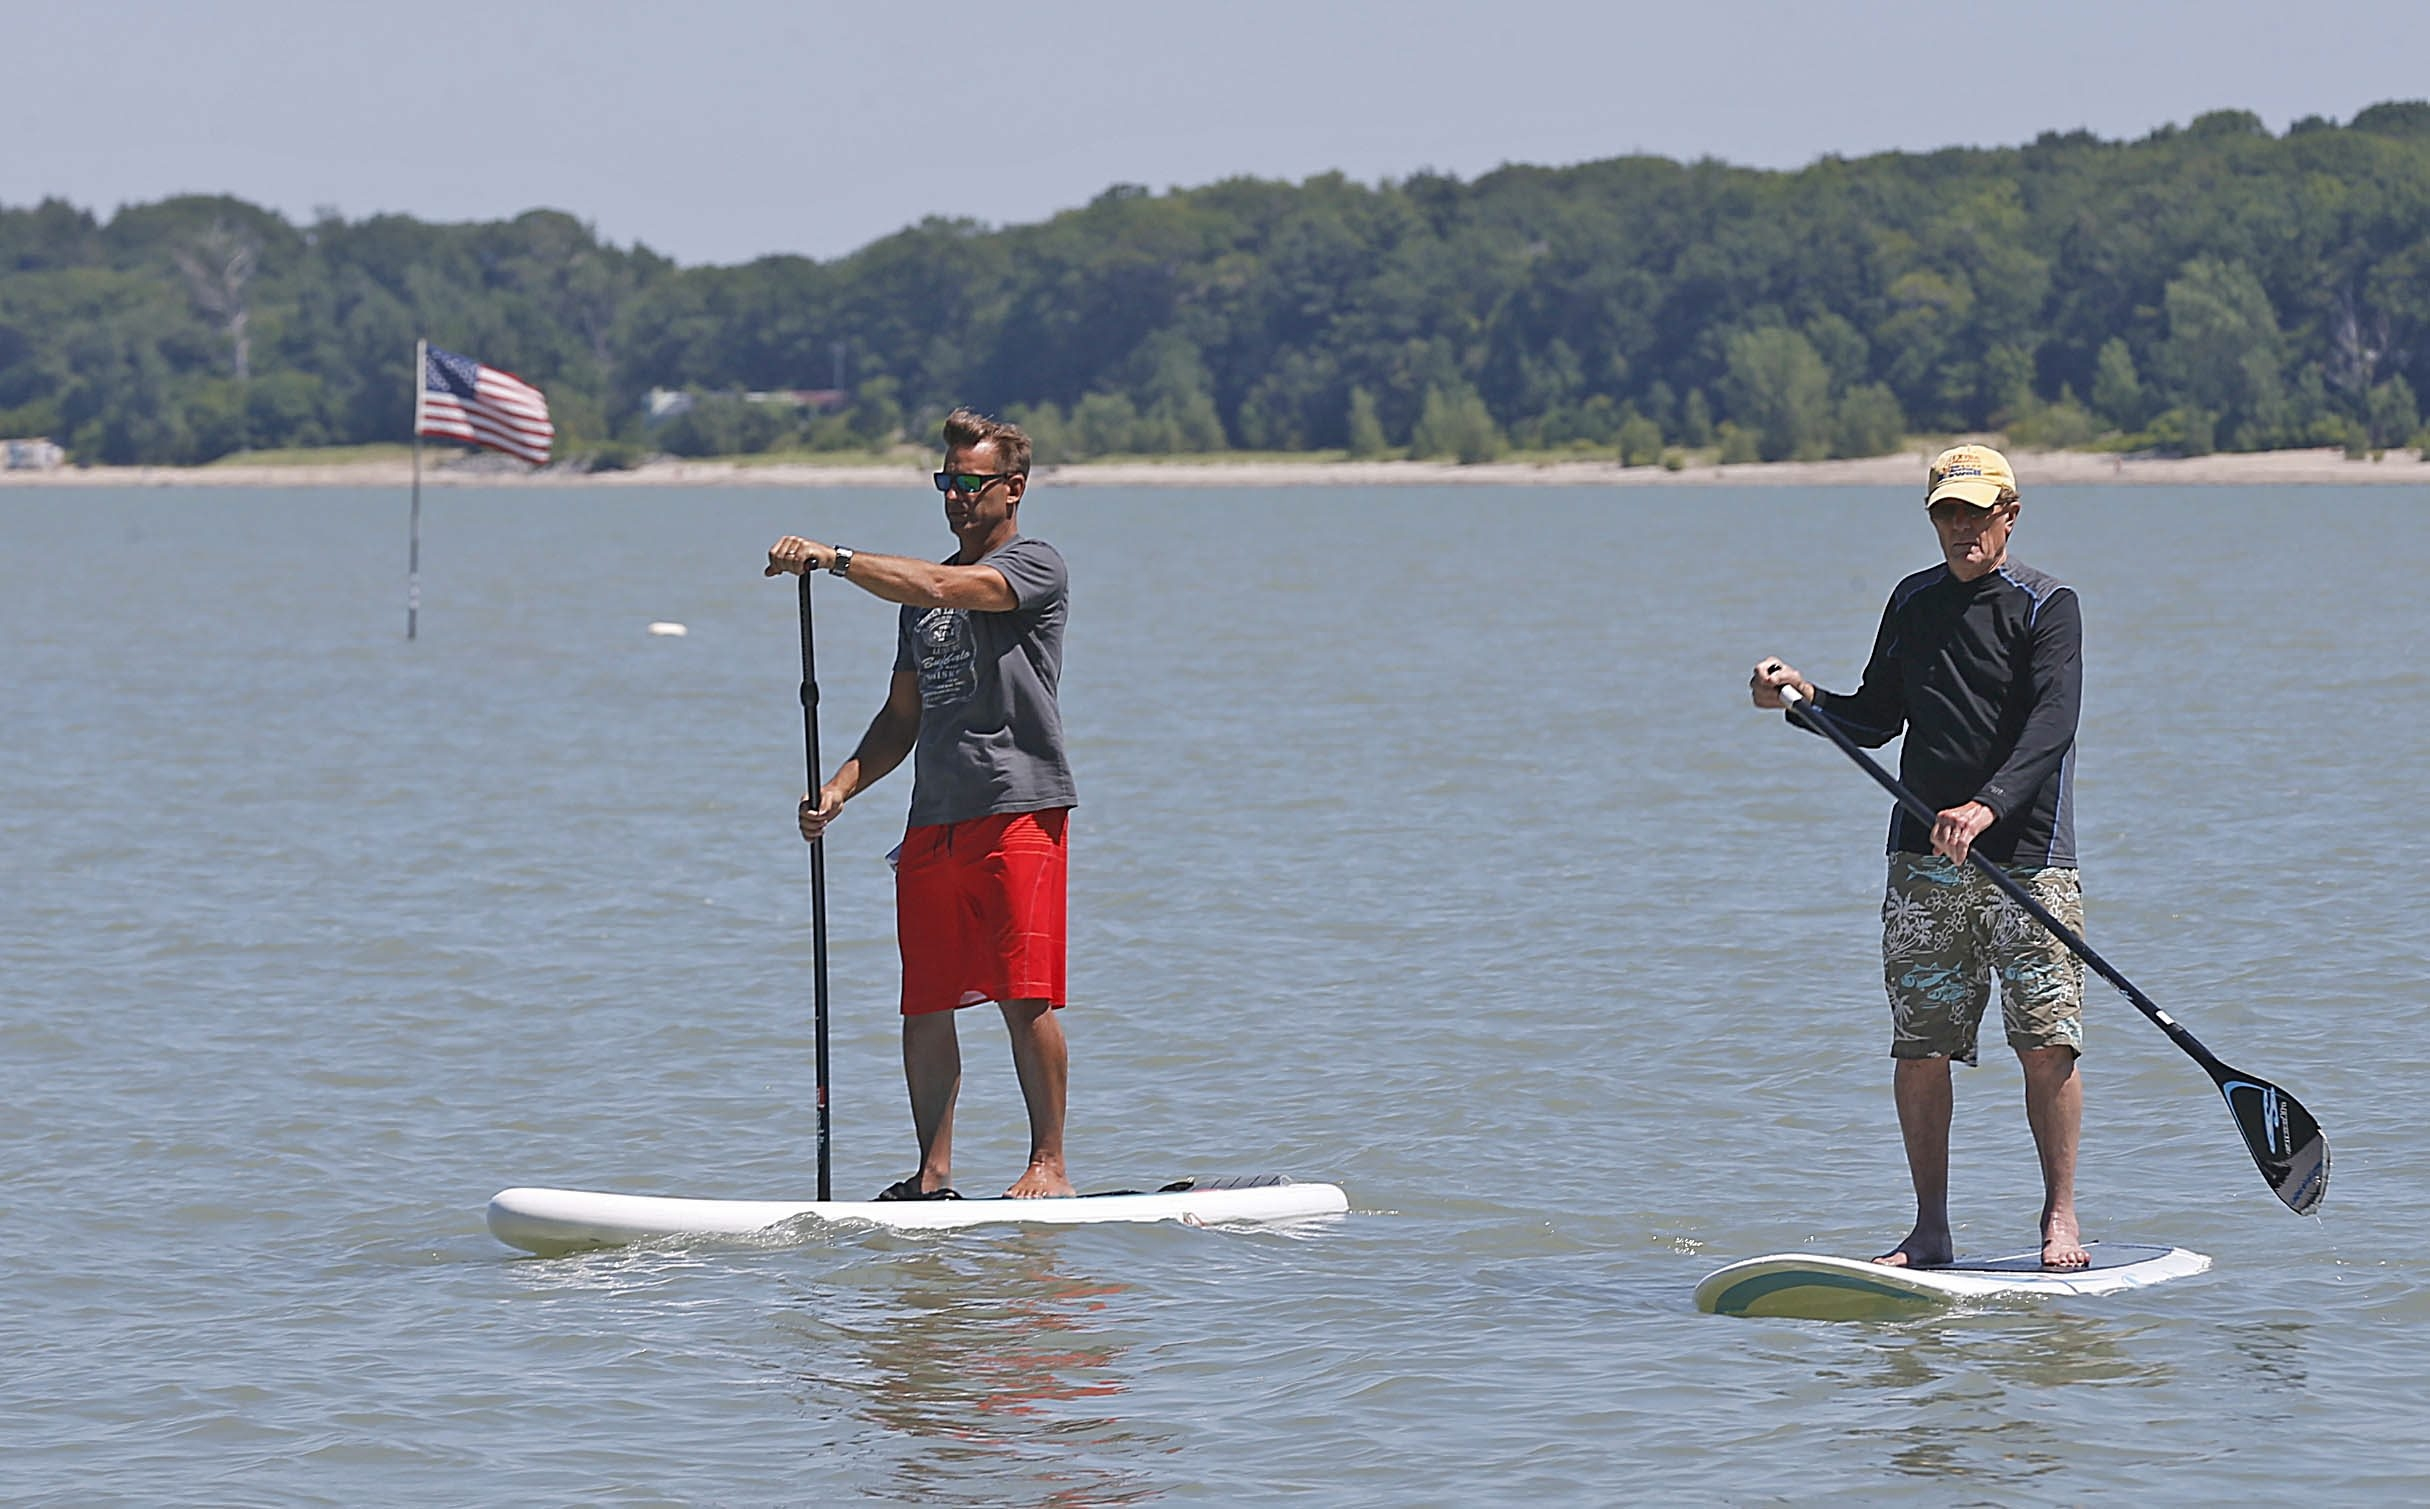 Ward Pinkel, left, and Ben Little, two Grandview Bay residents, paddle around near a U.S. flag in the water near their cottages. Pinkel placed the flag there several years ago to warn boaters of shallow waters – not recently a problem thanks to heavy rain – and rocks.